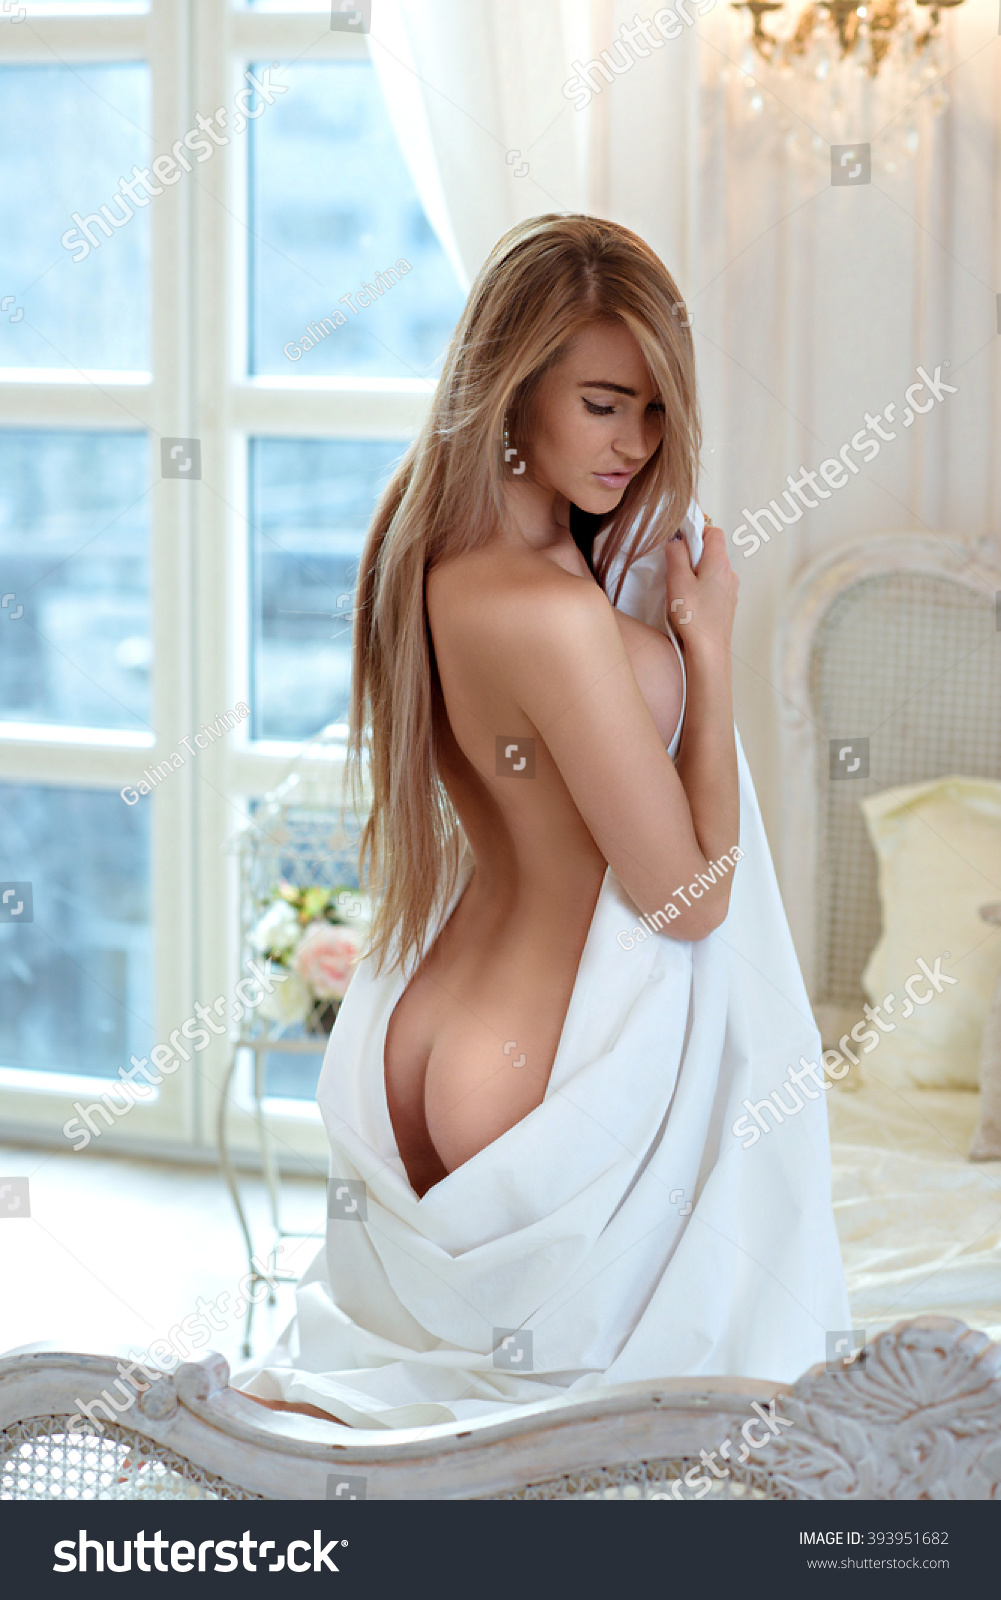 beautiful nude sexy lady elegant pose stock photo (safe to use